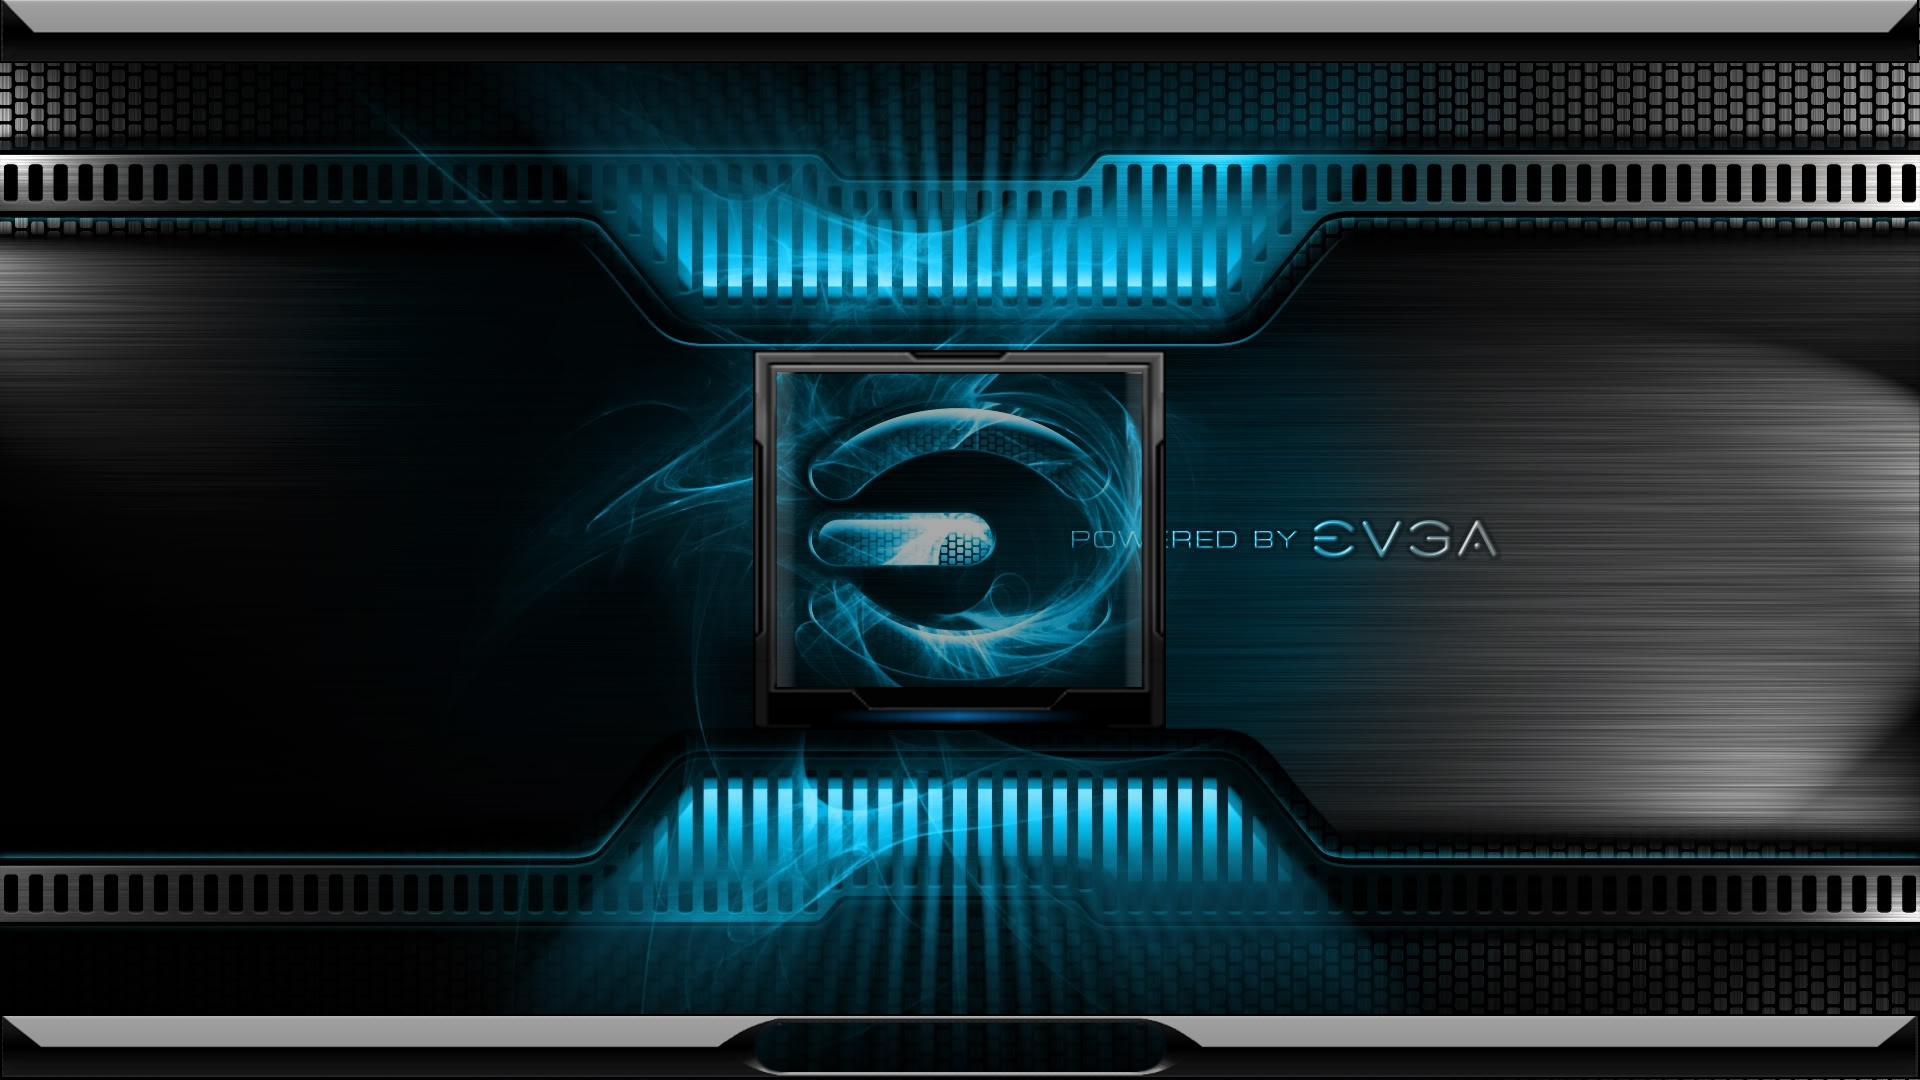 Poered By Evga Logon by GARY